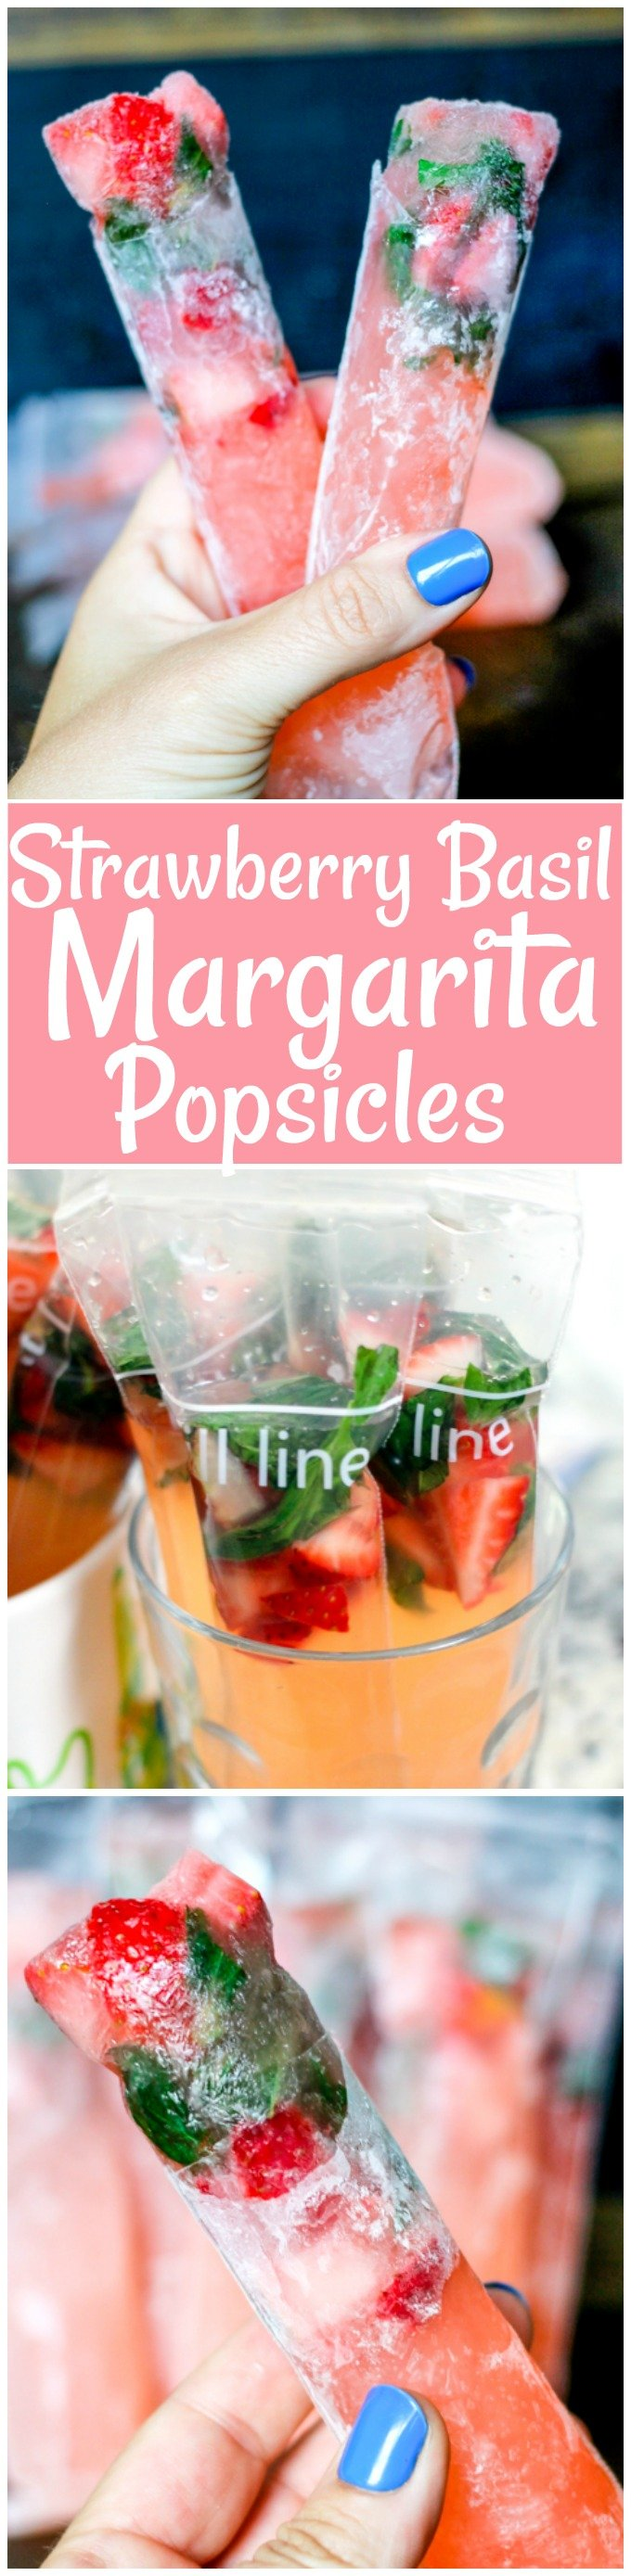 Strawberry Basil Margarita Popsicles are not only boozy and delicious, but they are simple to make! Everyone is going to be begging for them this summer!